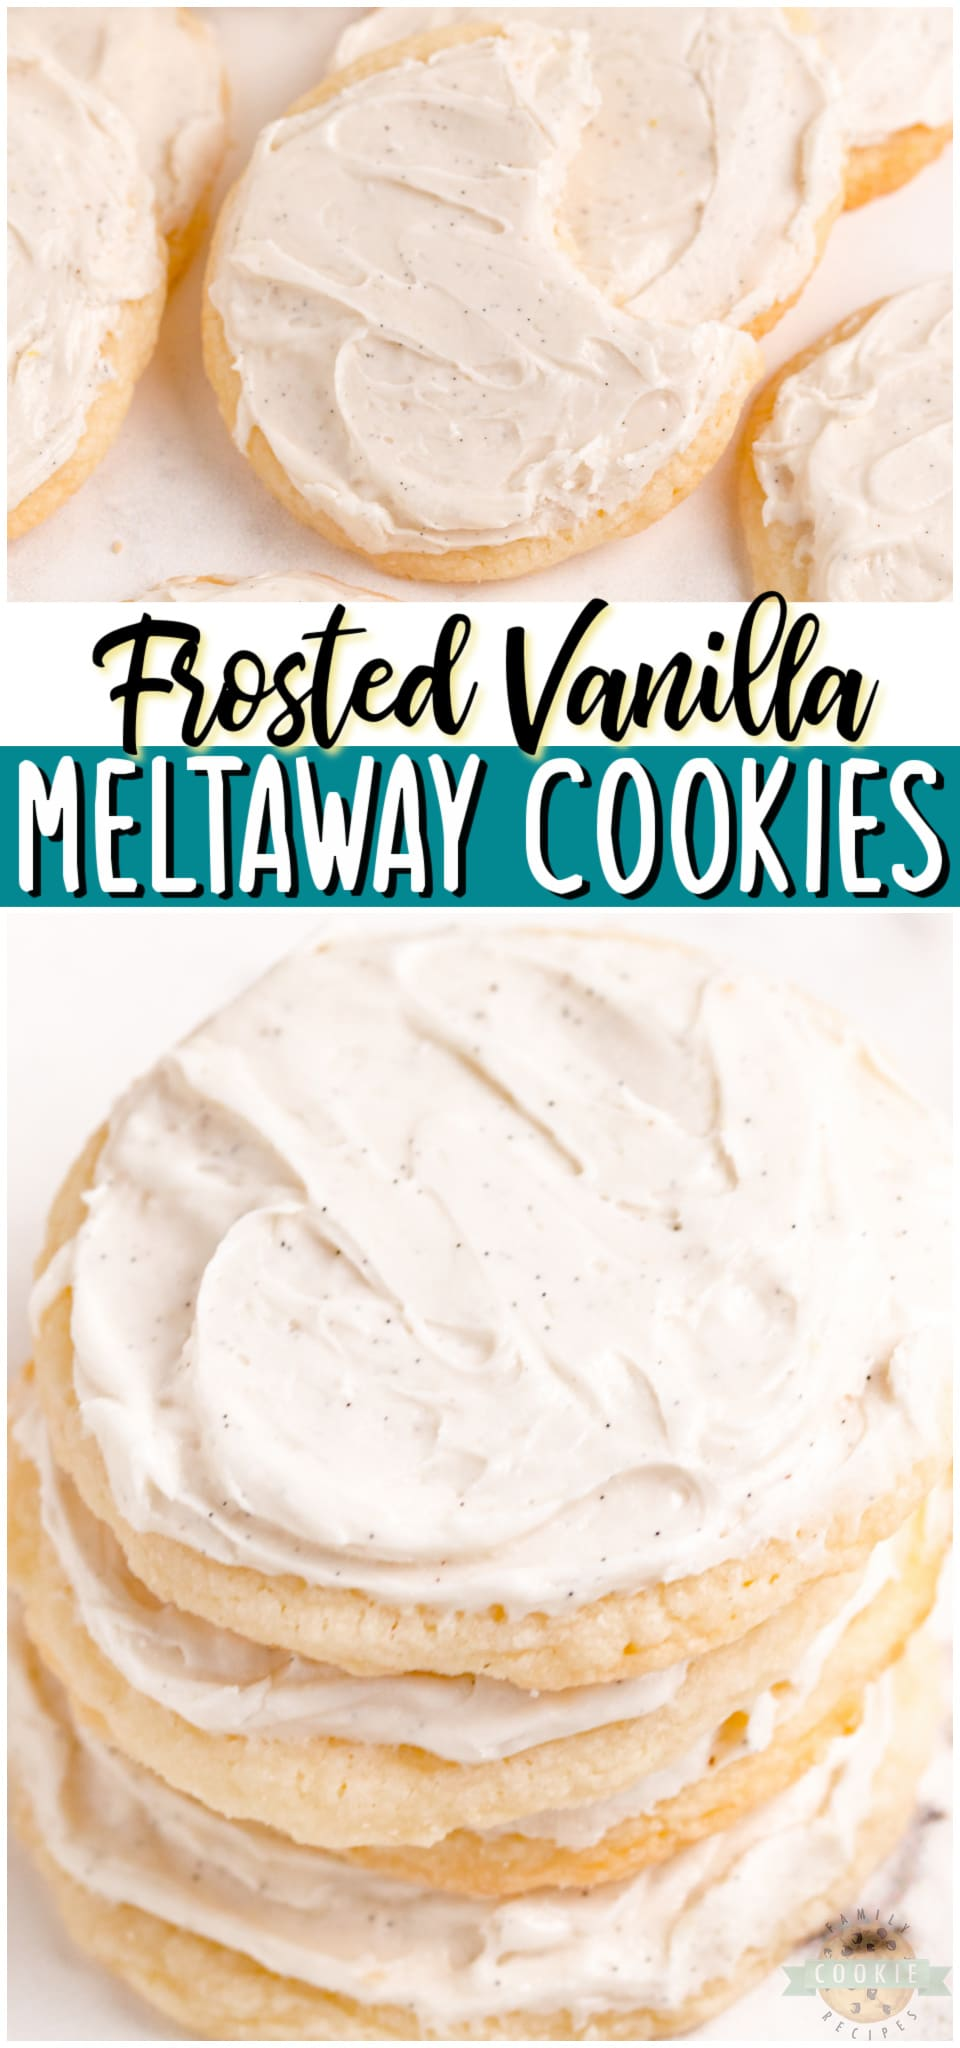 Vanilla Meltaways are a melt-in-your-mouth soft cookie topped with a light vanilla bean frosting. Very vanilla soft, sweet cookie that everyone loves!